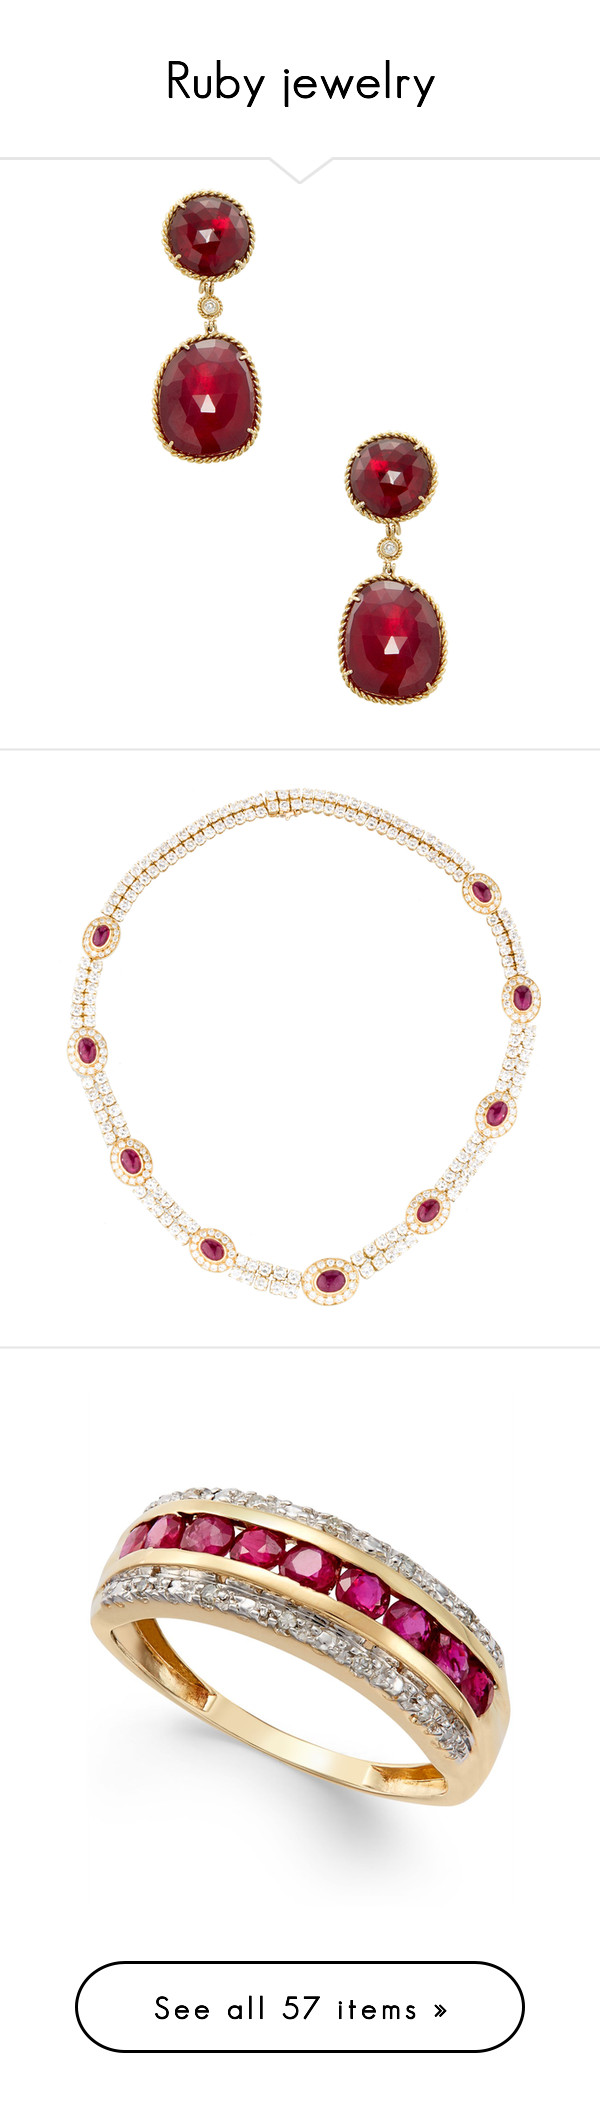 """Ruby jewelry"" by missloveschic ❤ liked on Polyvore featuring jewelry, earrings, red, ruby drop earrings, 18k diamond earrings, red jewelry, drop earrings, long diamond earrings, necklaces and gold"